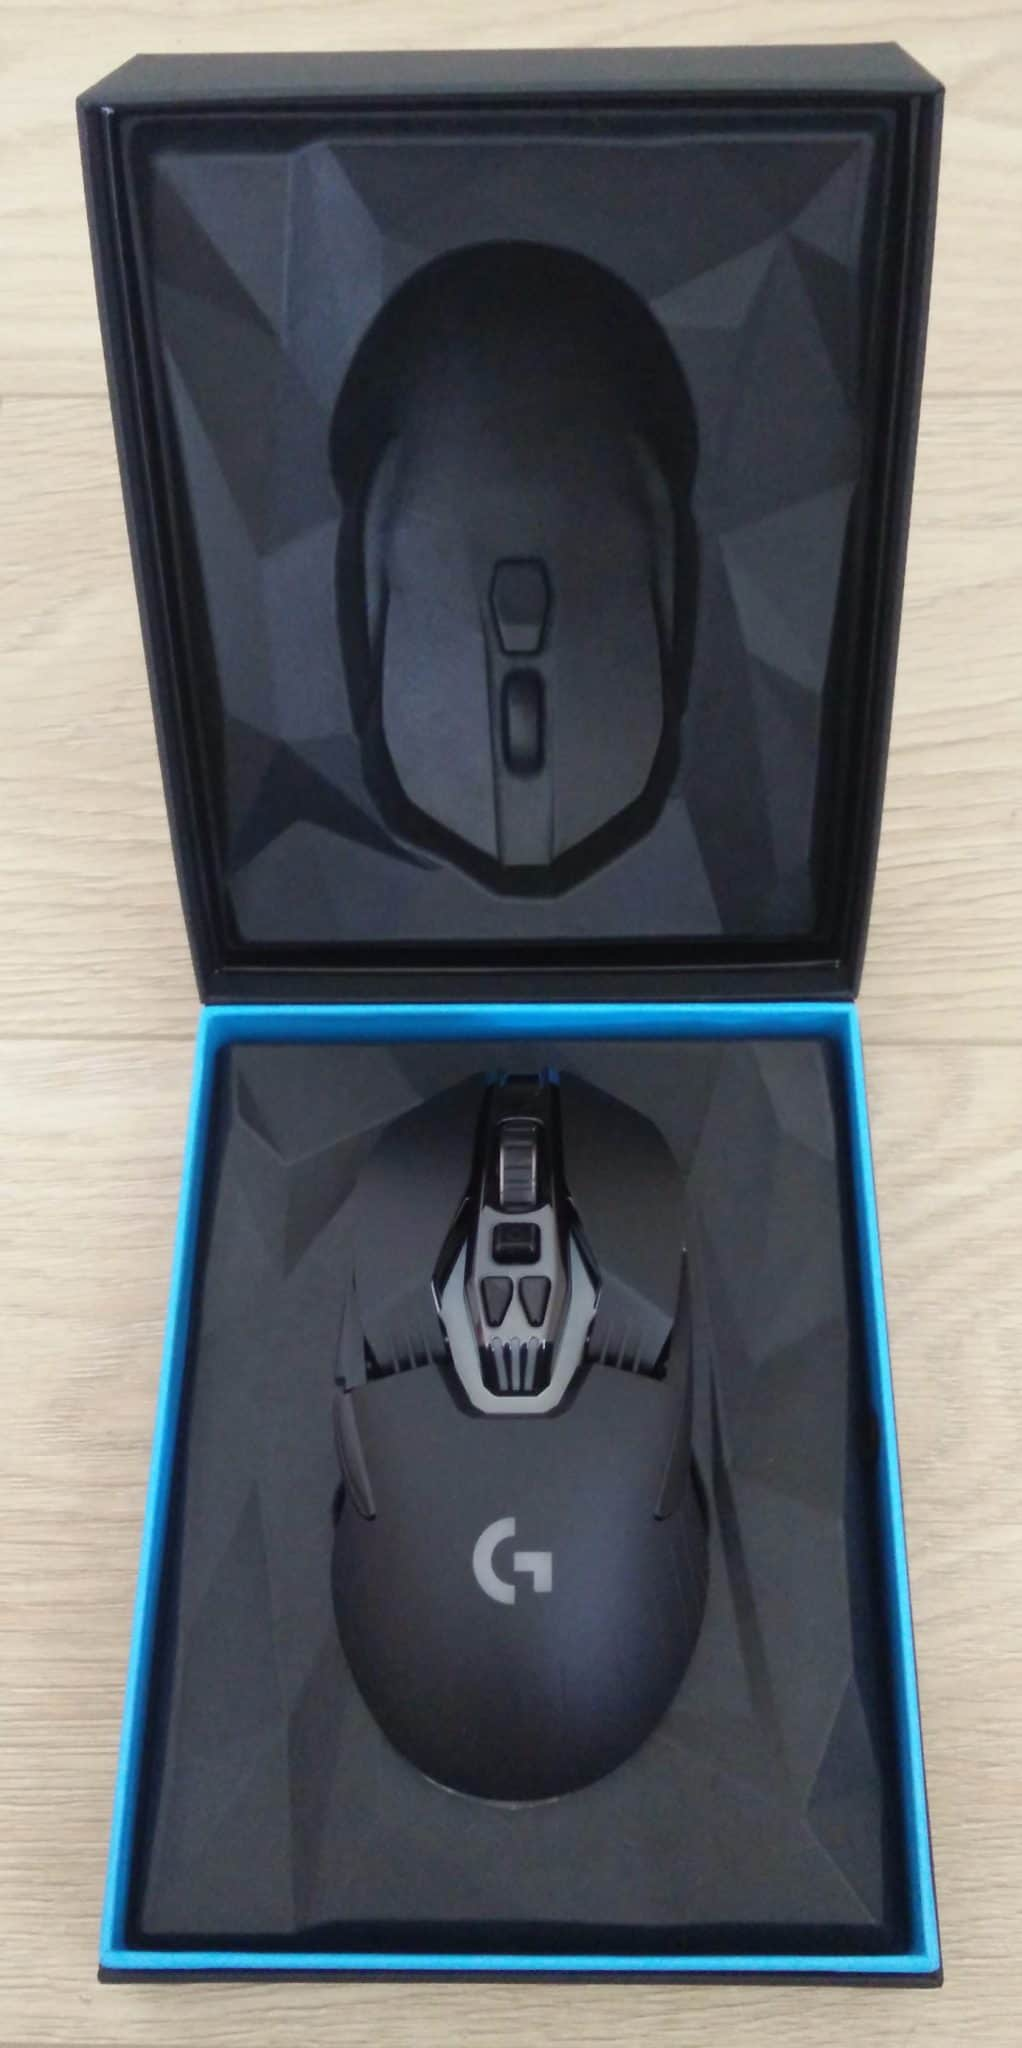 Logitech-G900-Photo-05 Logitech G900 Chaos Spectrum Gaming Mouse Review